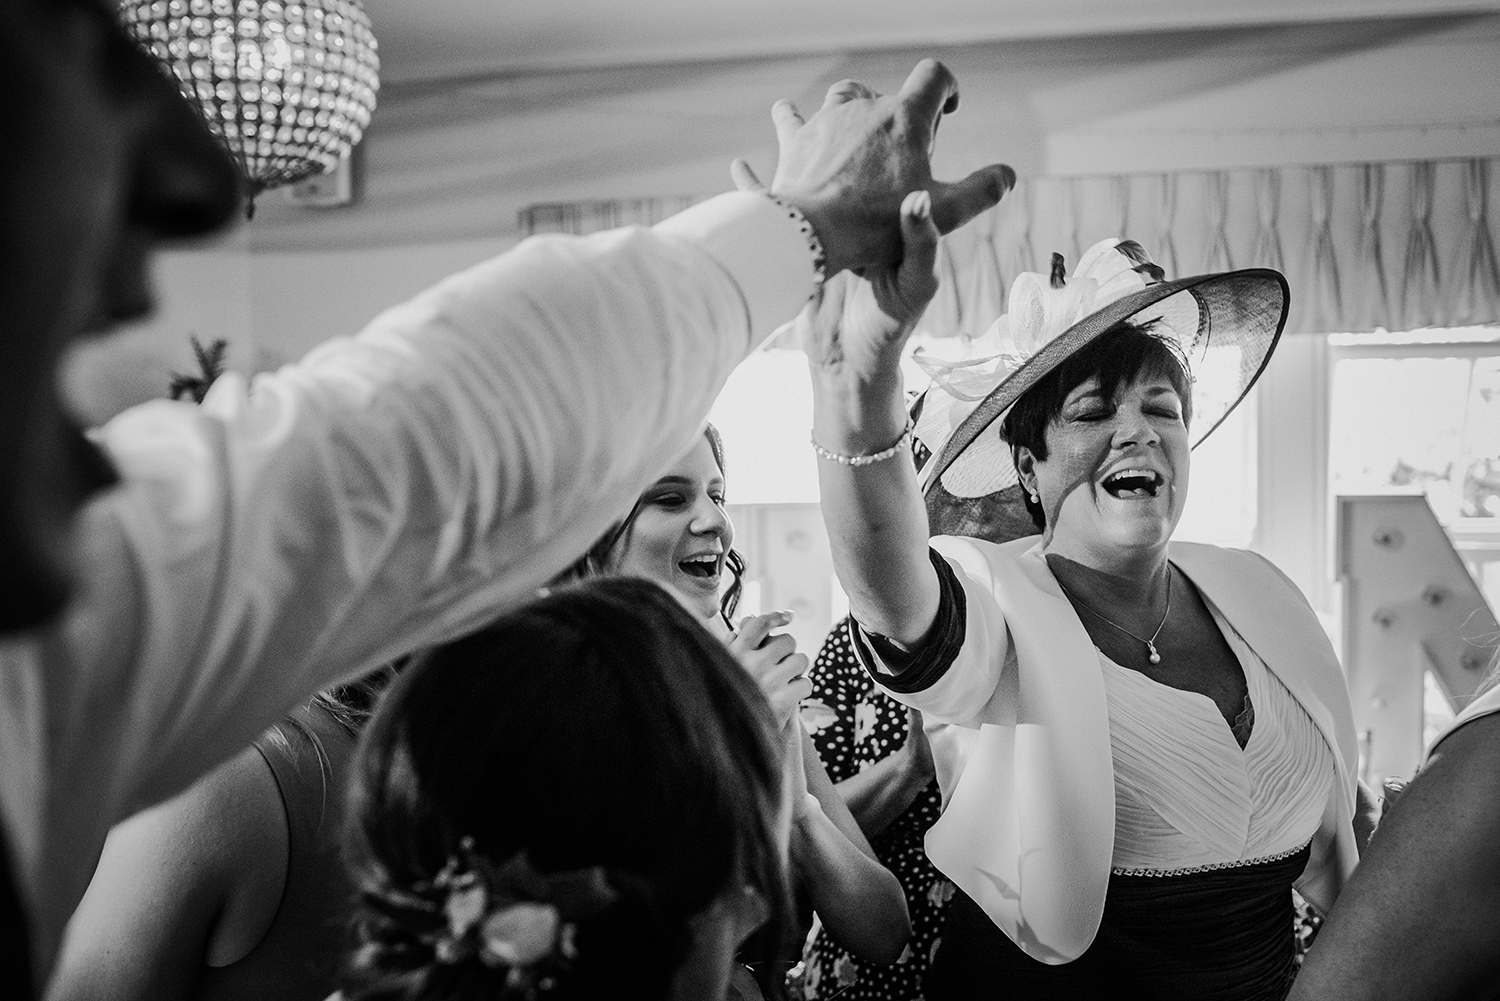 bw photo. Bride's mother holding hands in the air and singing. Emotional tribute to a lost relative